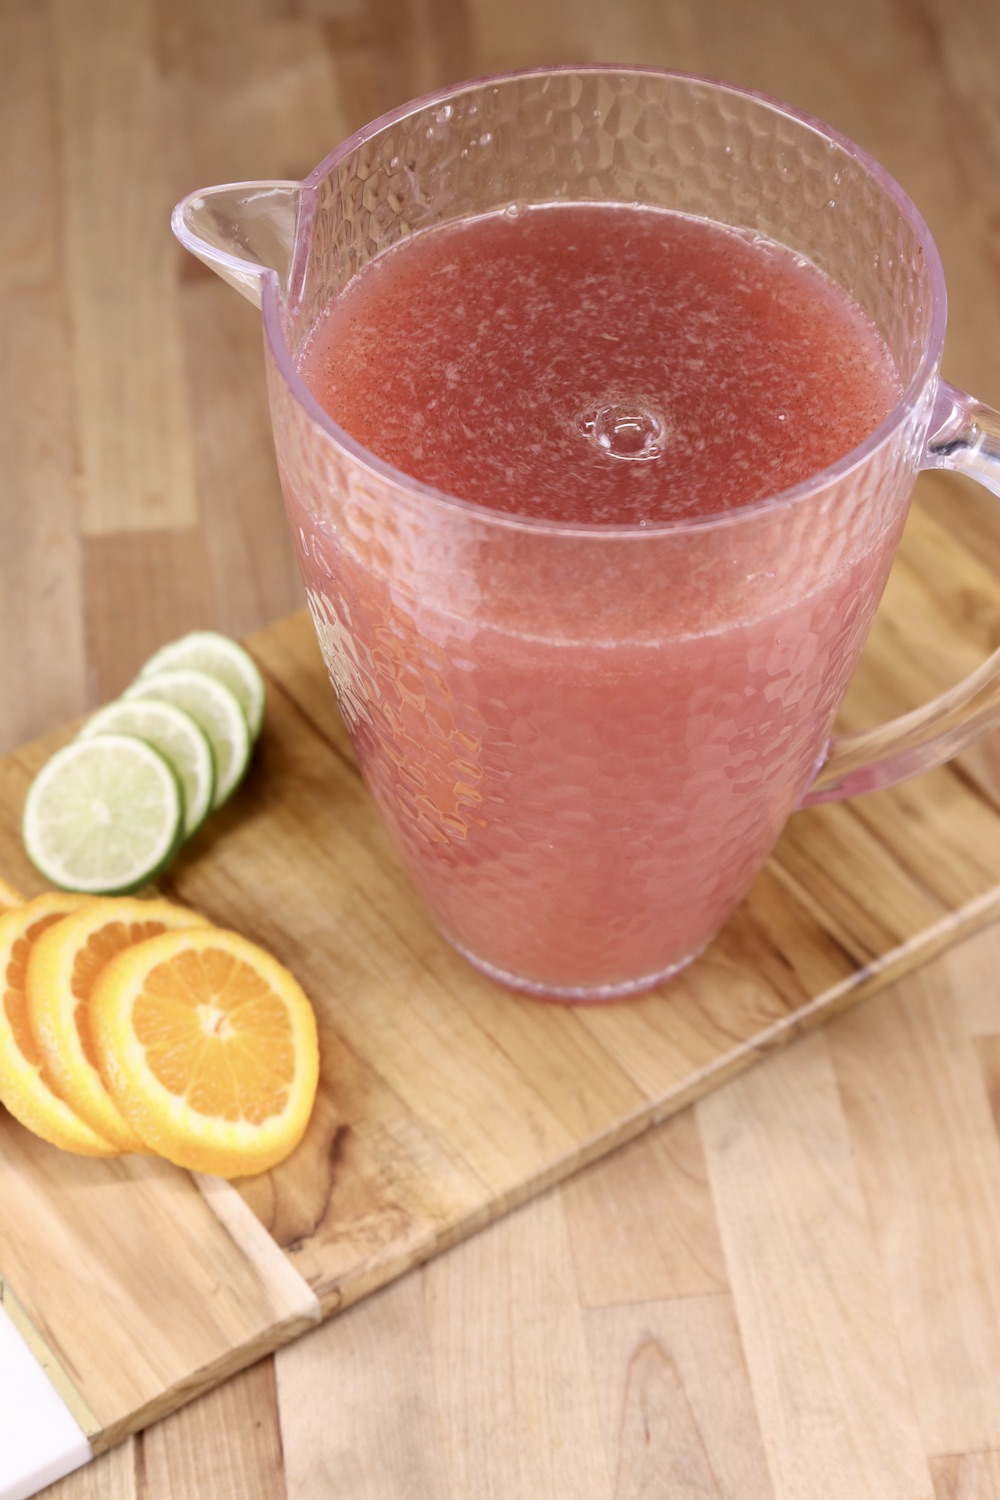 Pitcher of Christmas punch on a wood board with slices of orange and limes.